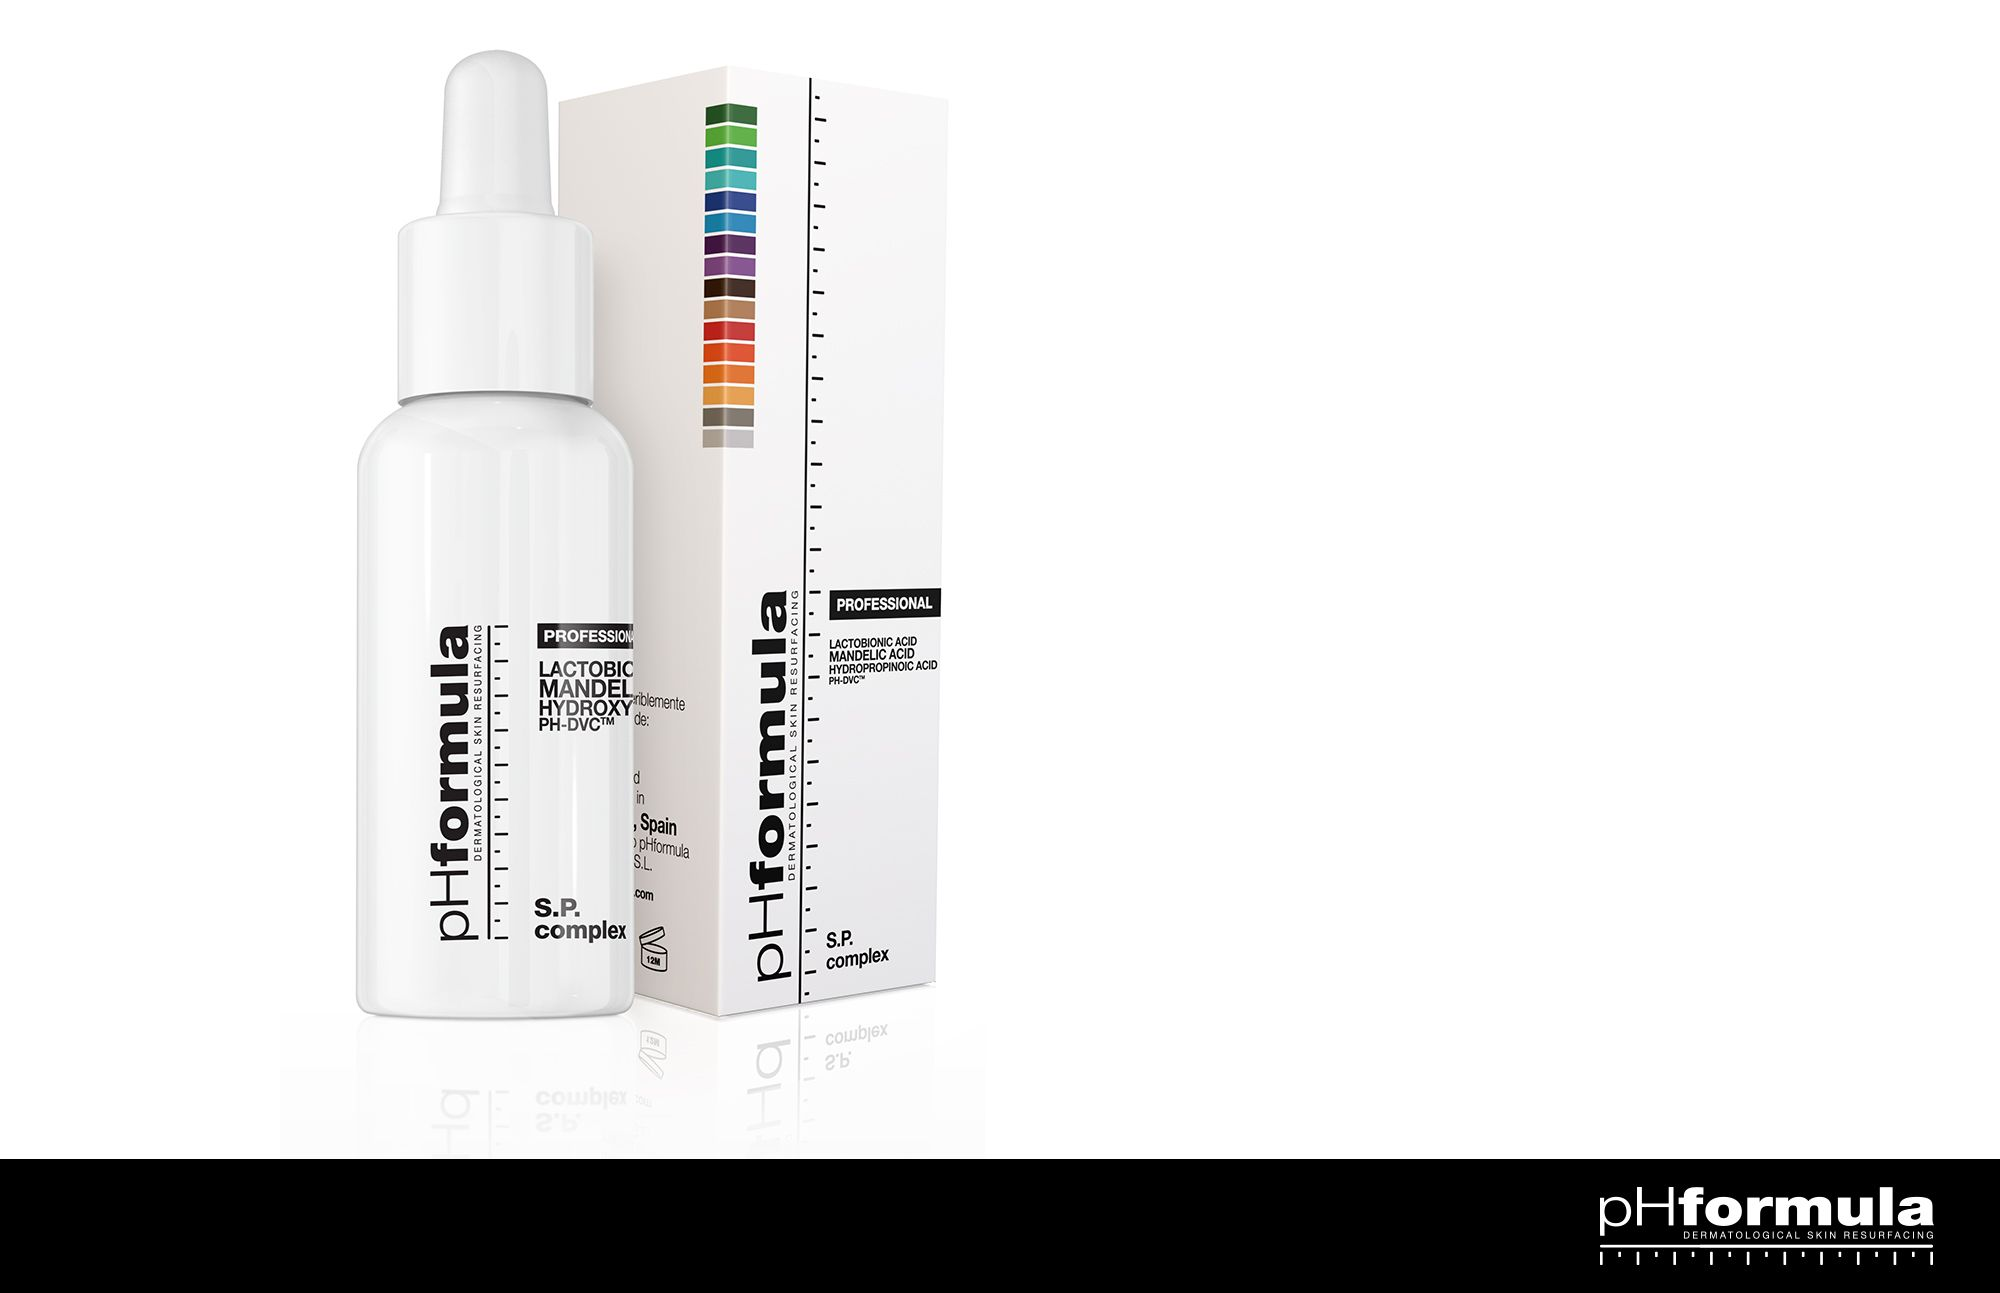 The S.P. complex is used to determine each patients sensitivity level and will guide the skin specialist in choosing the correct treatment protocols. #innovations #PhysicianWellness #treatment #pHformula